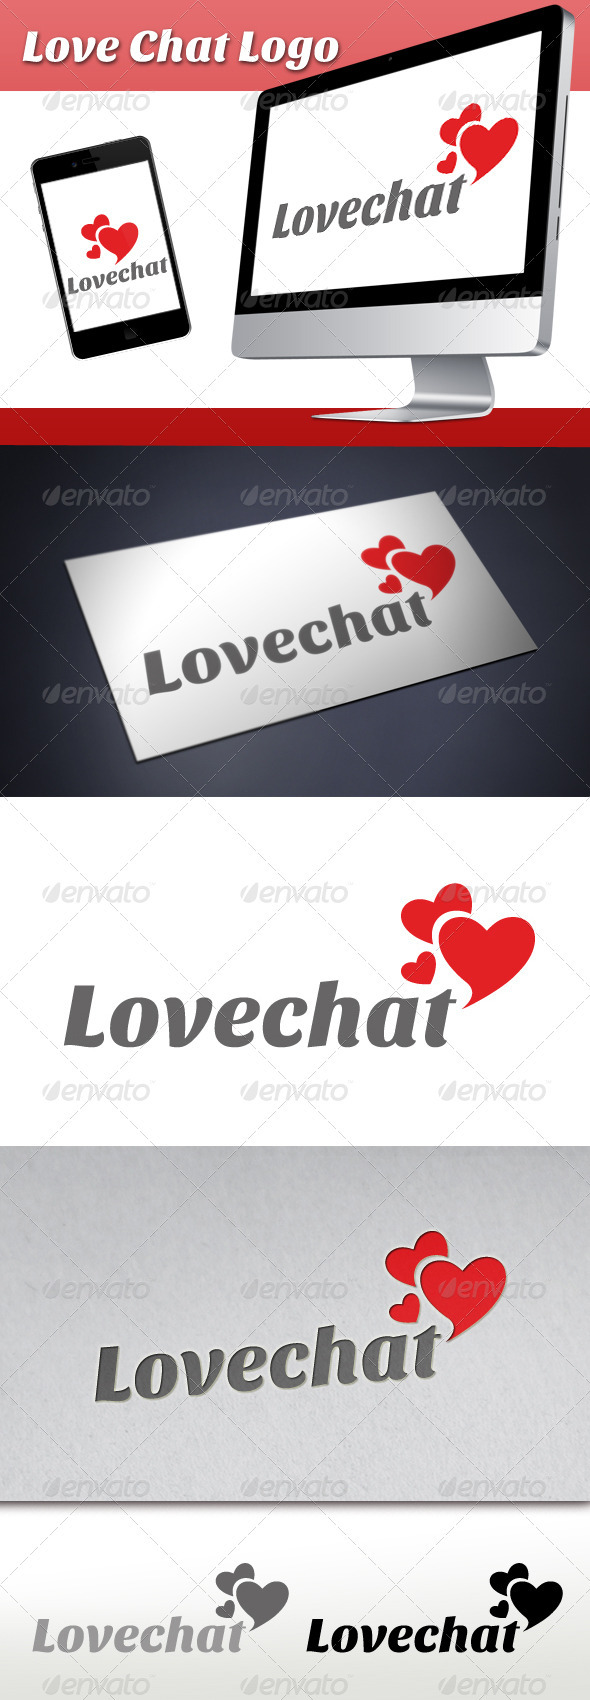 Love Chat Logo 1 - Symbols Logo Templates